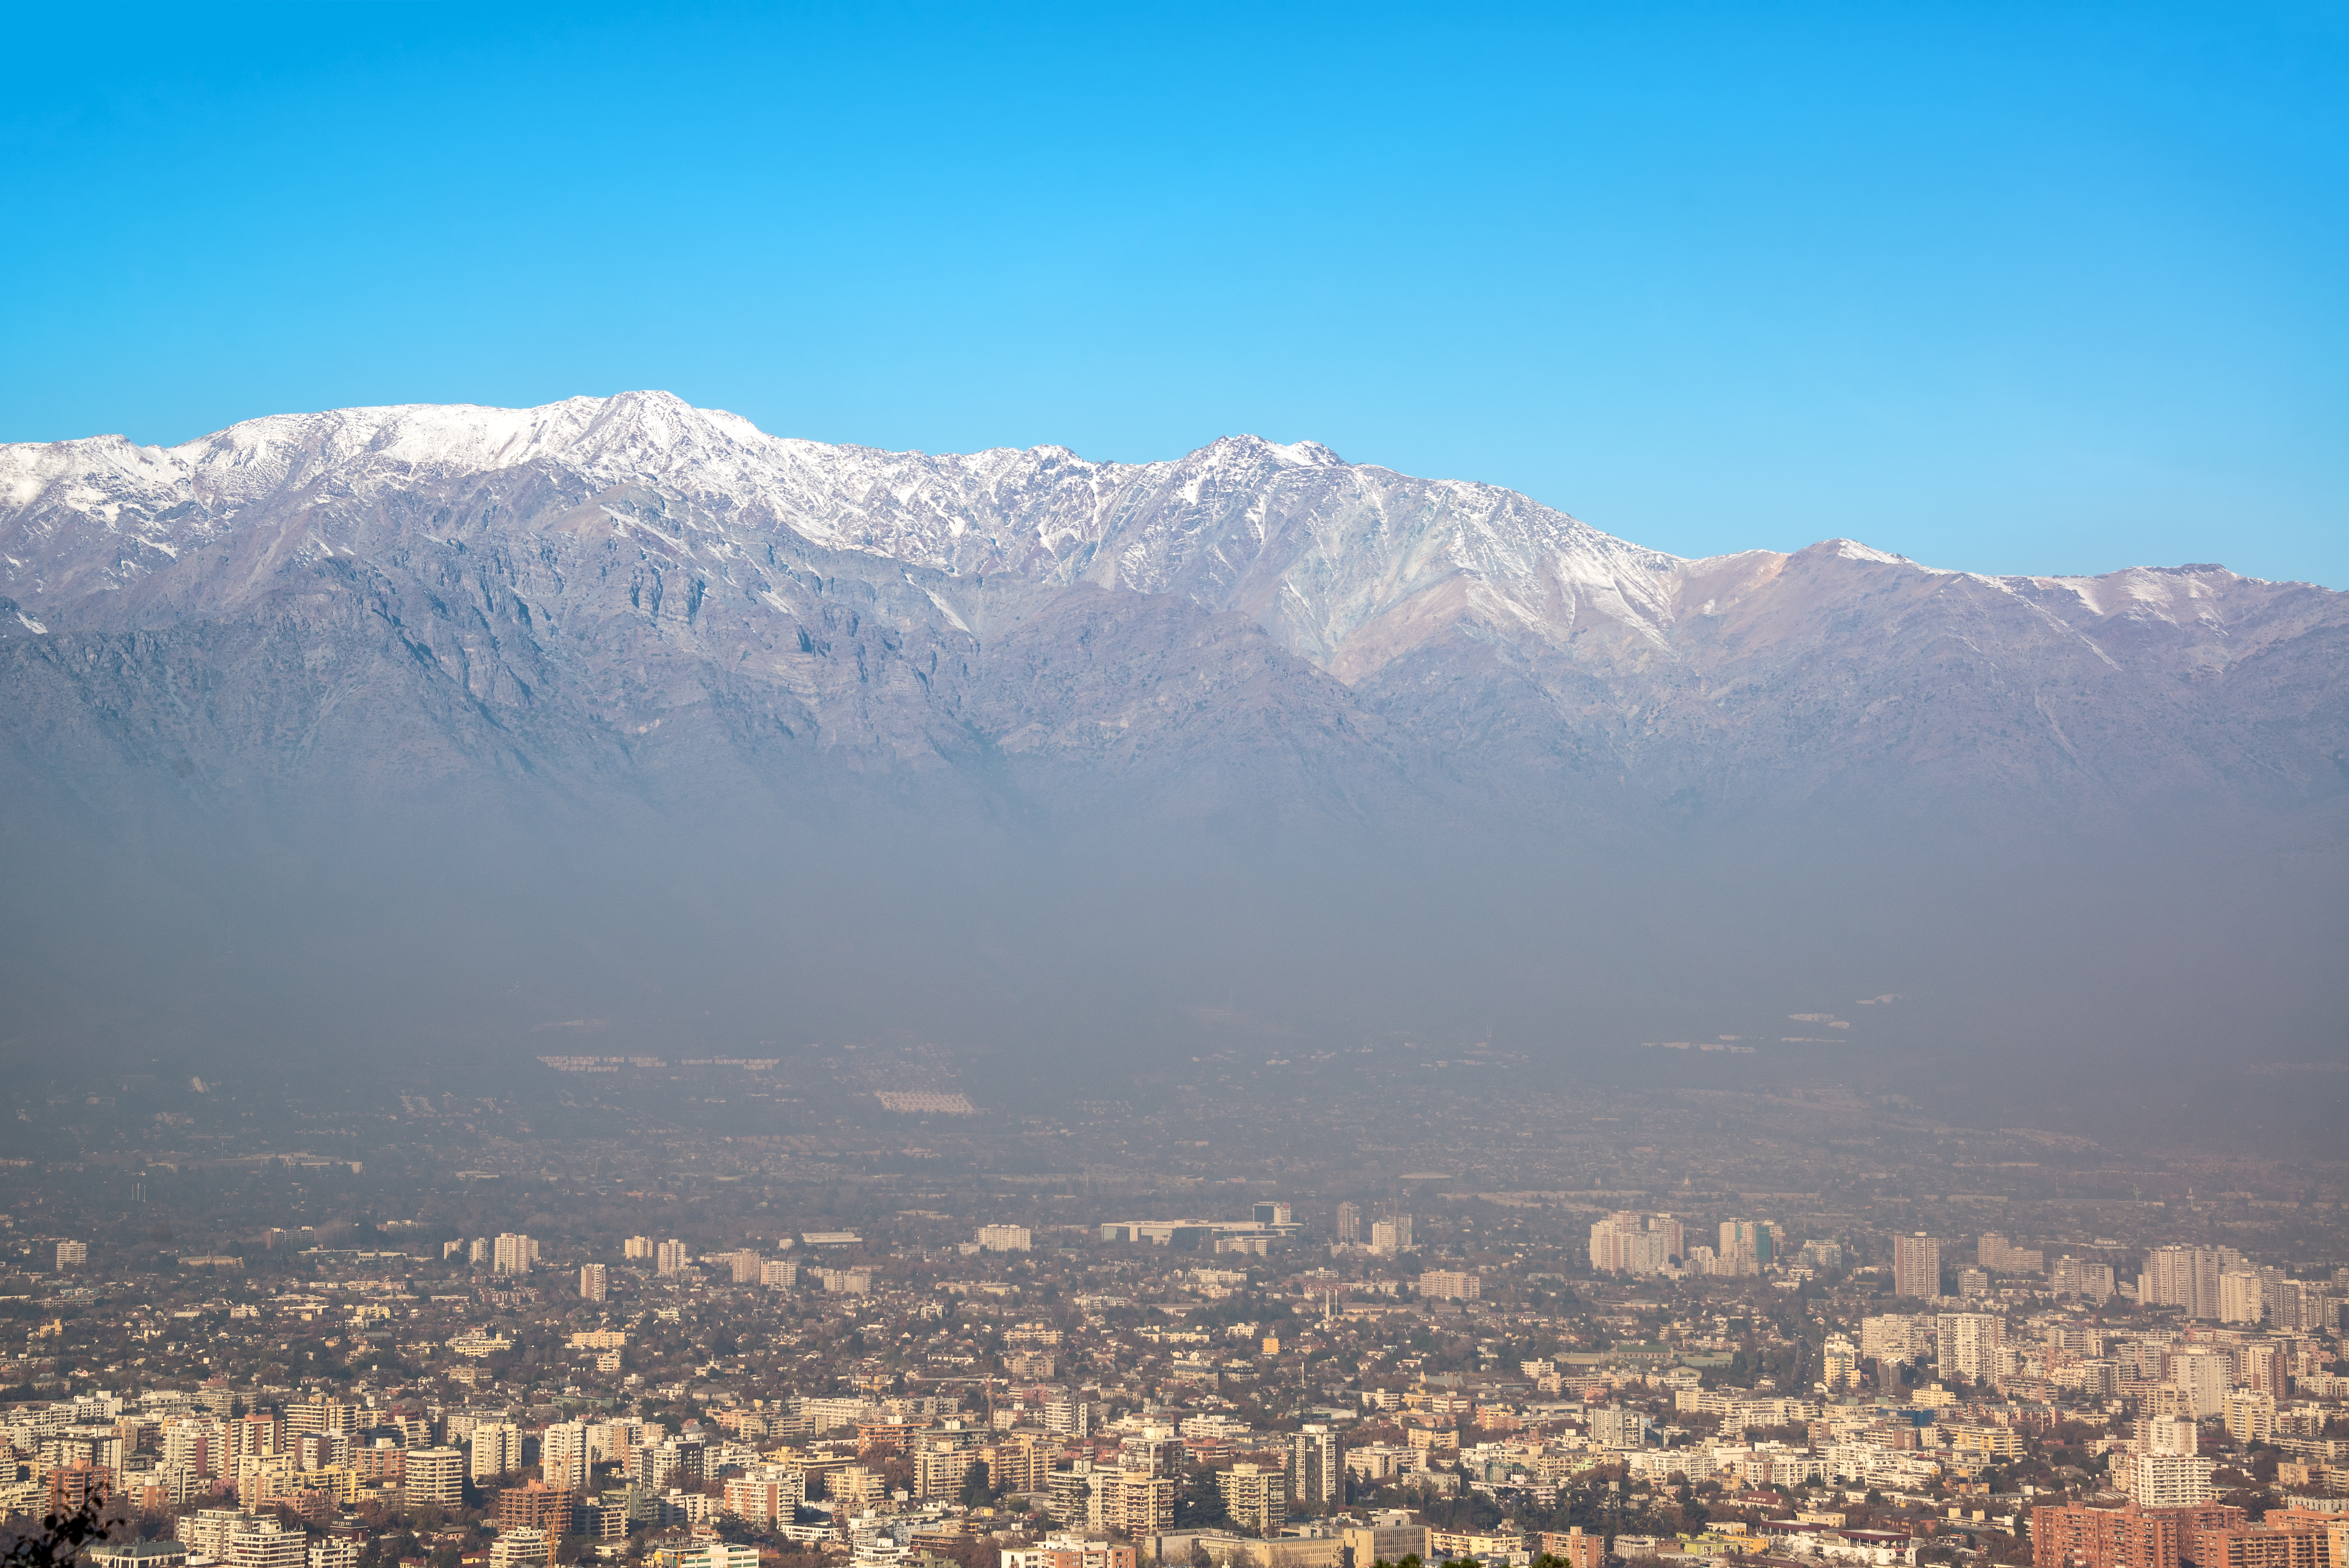 Santiago is Chile's capital and one of the best things to do when visiting Chile. Here's why.